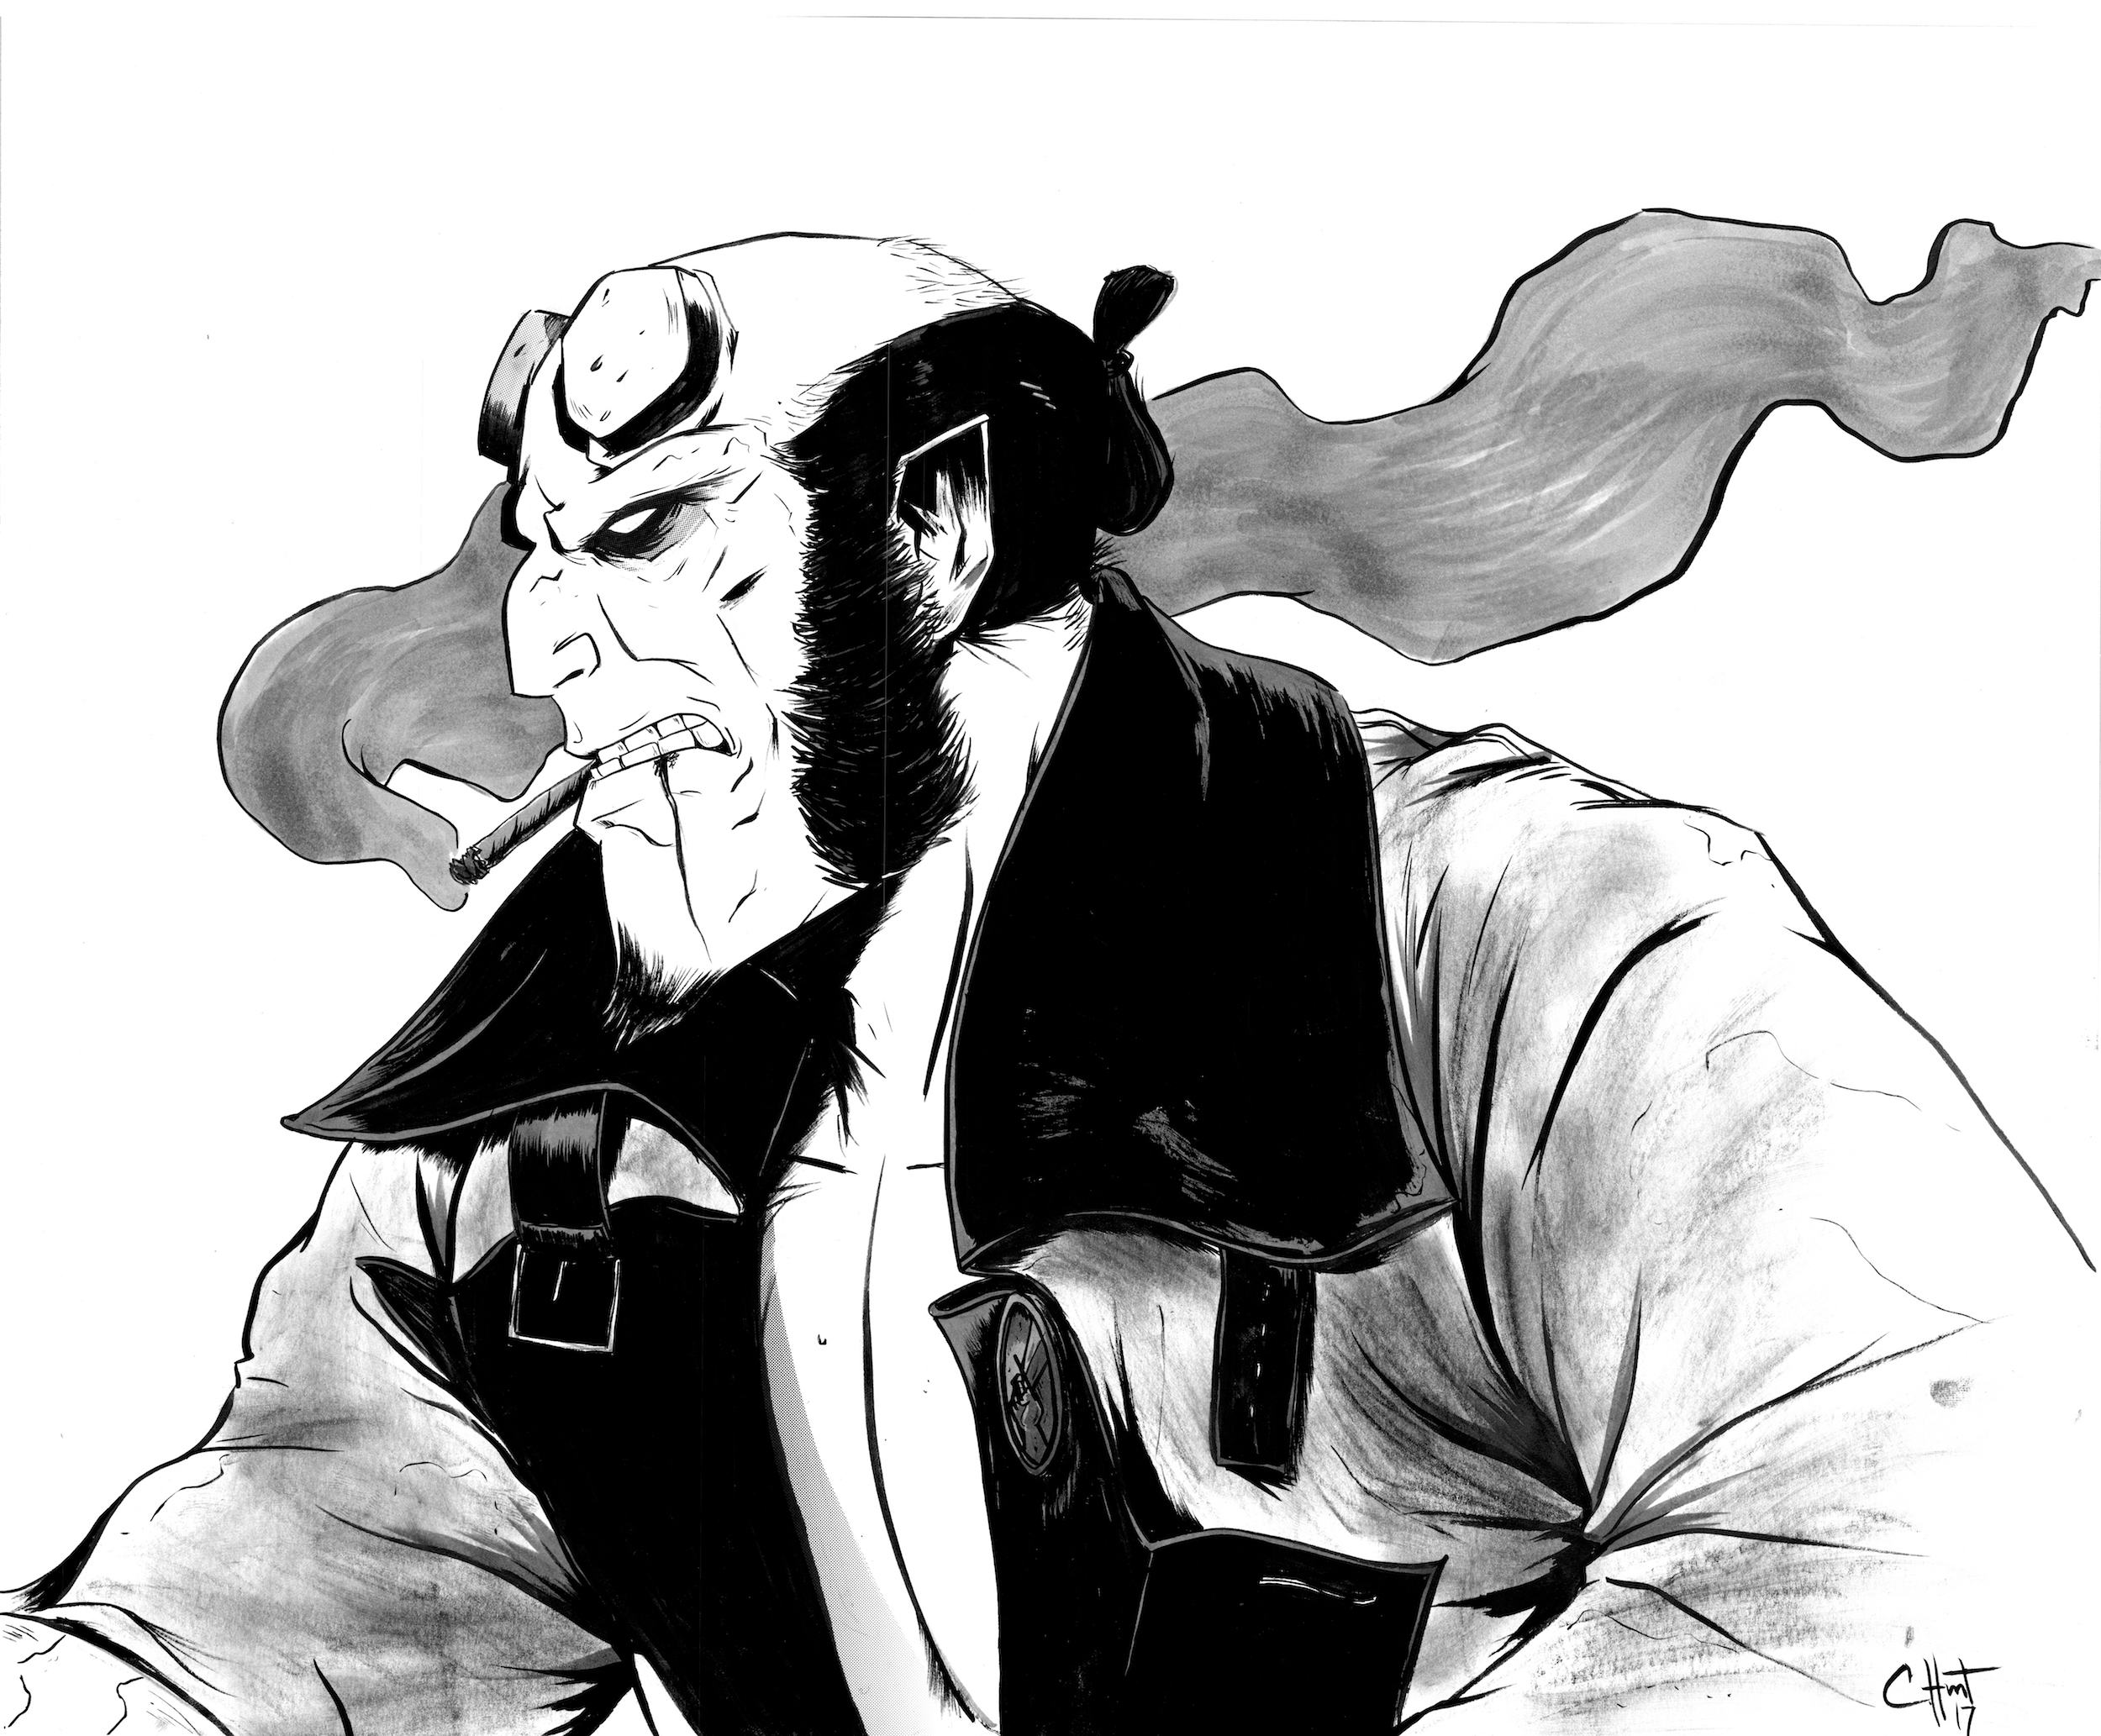 Hellboy Commission